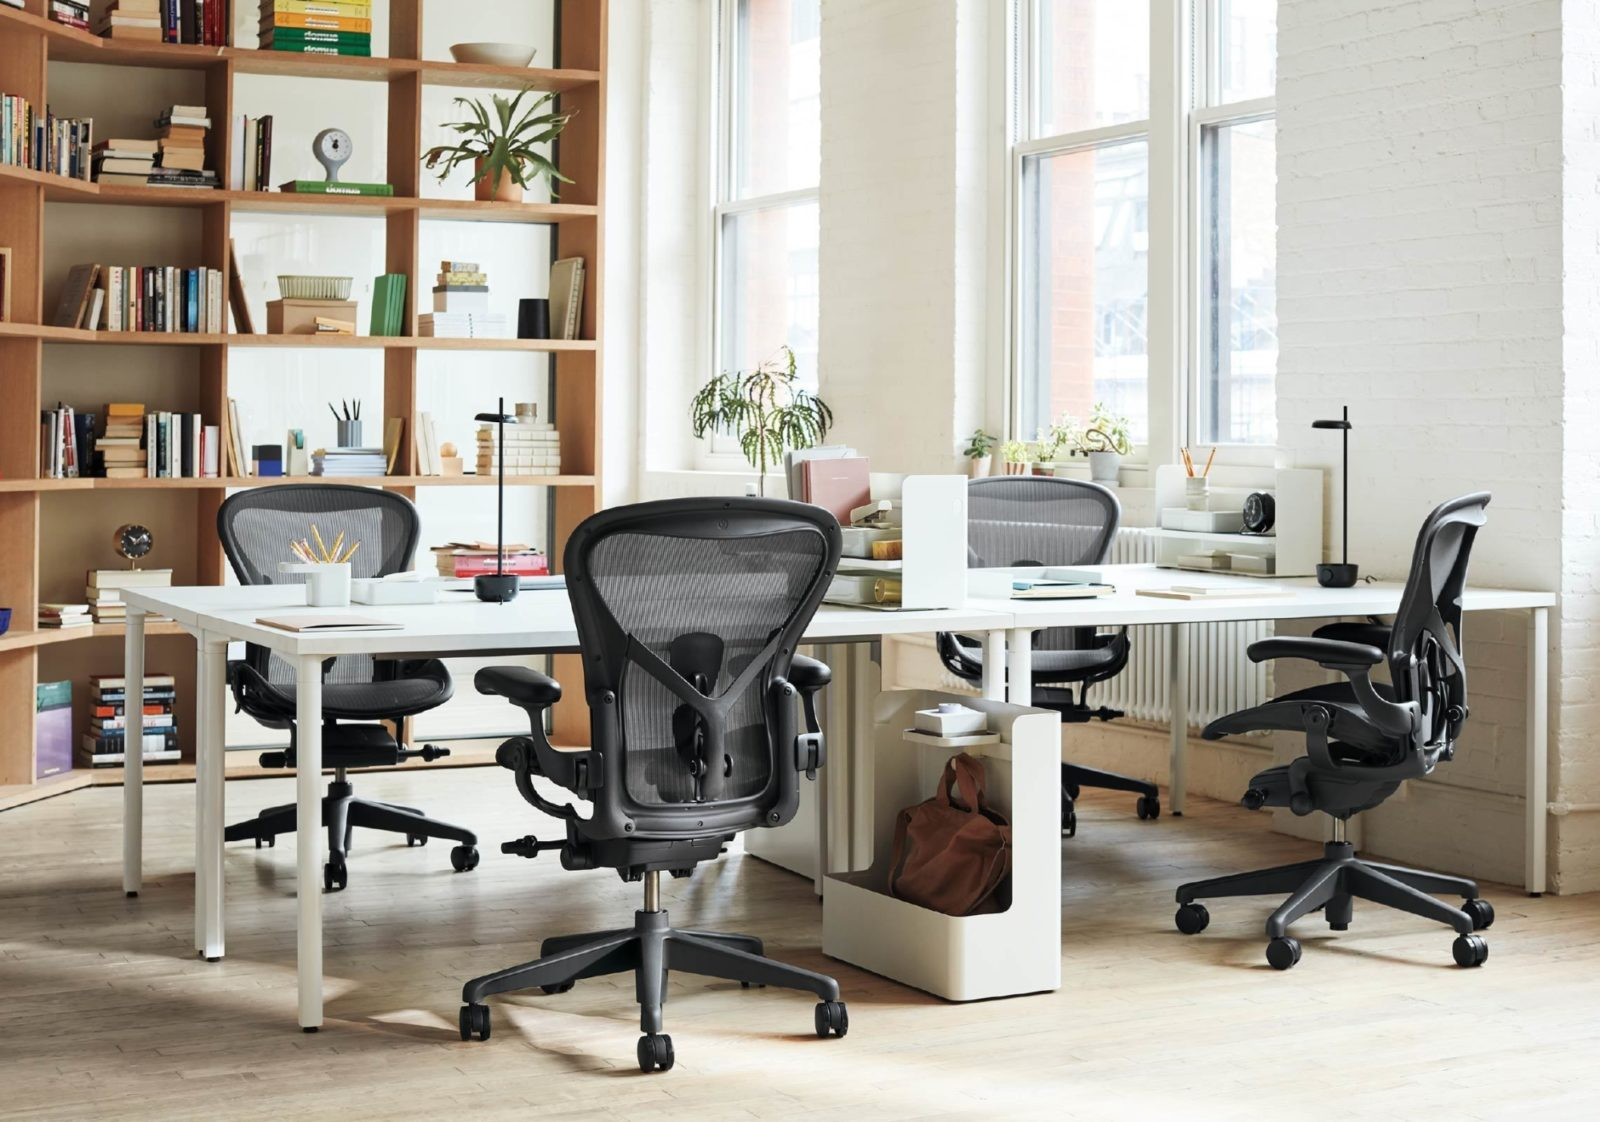 Black Aeron chairs at white OE1 Rectangular Desks with Ubi Work Tools and other desk accessories in a light-filled office.